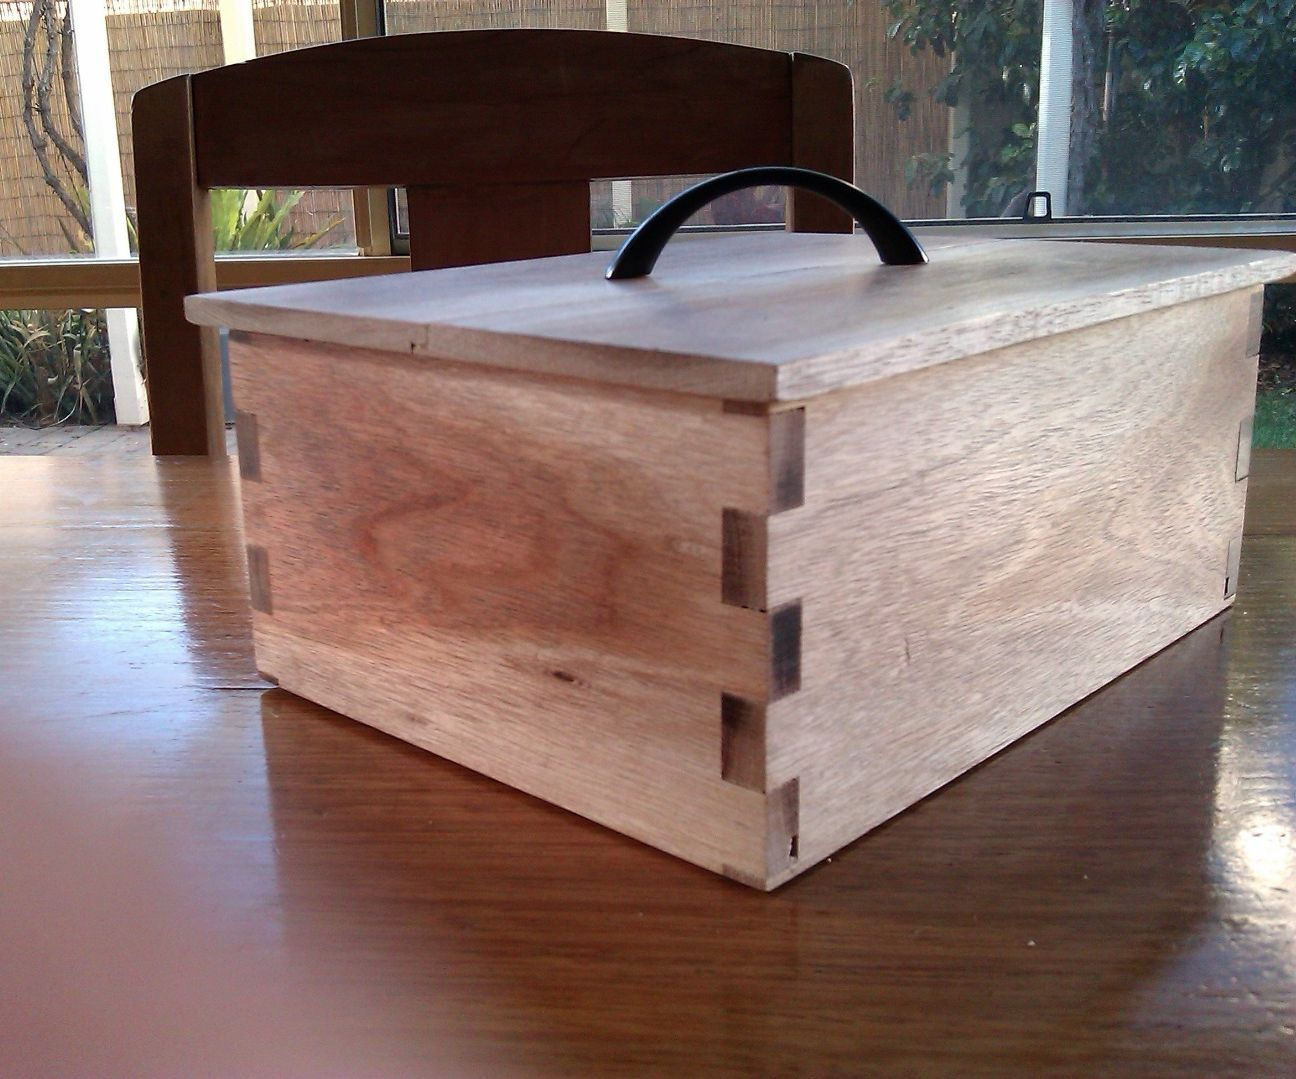 Make a finger jointed box on the router table